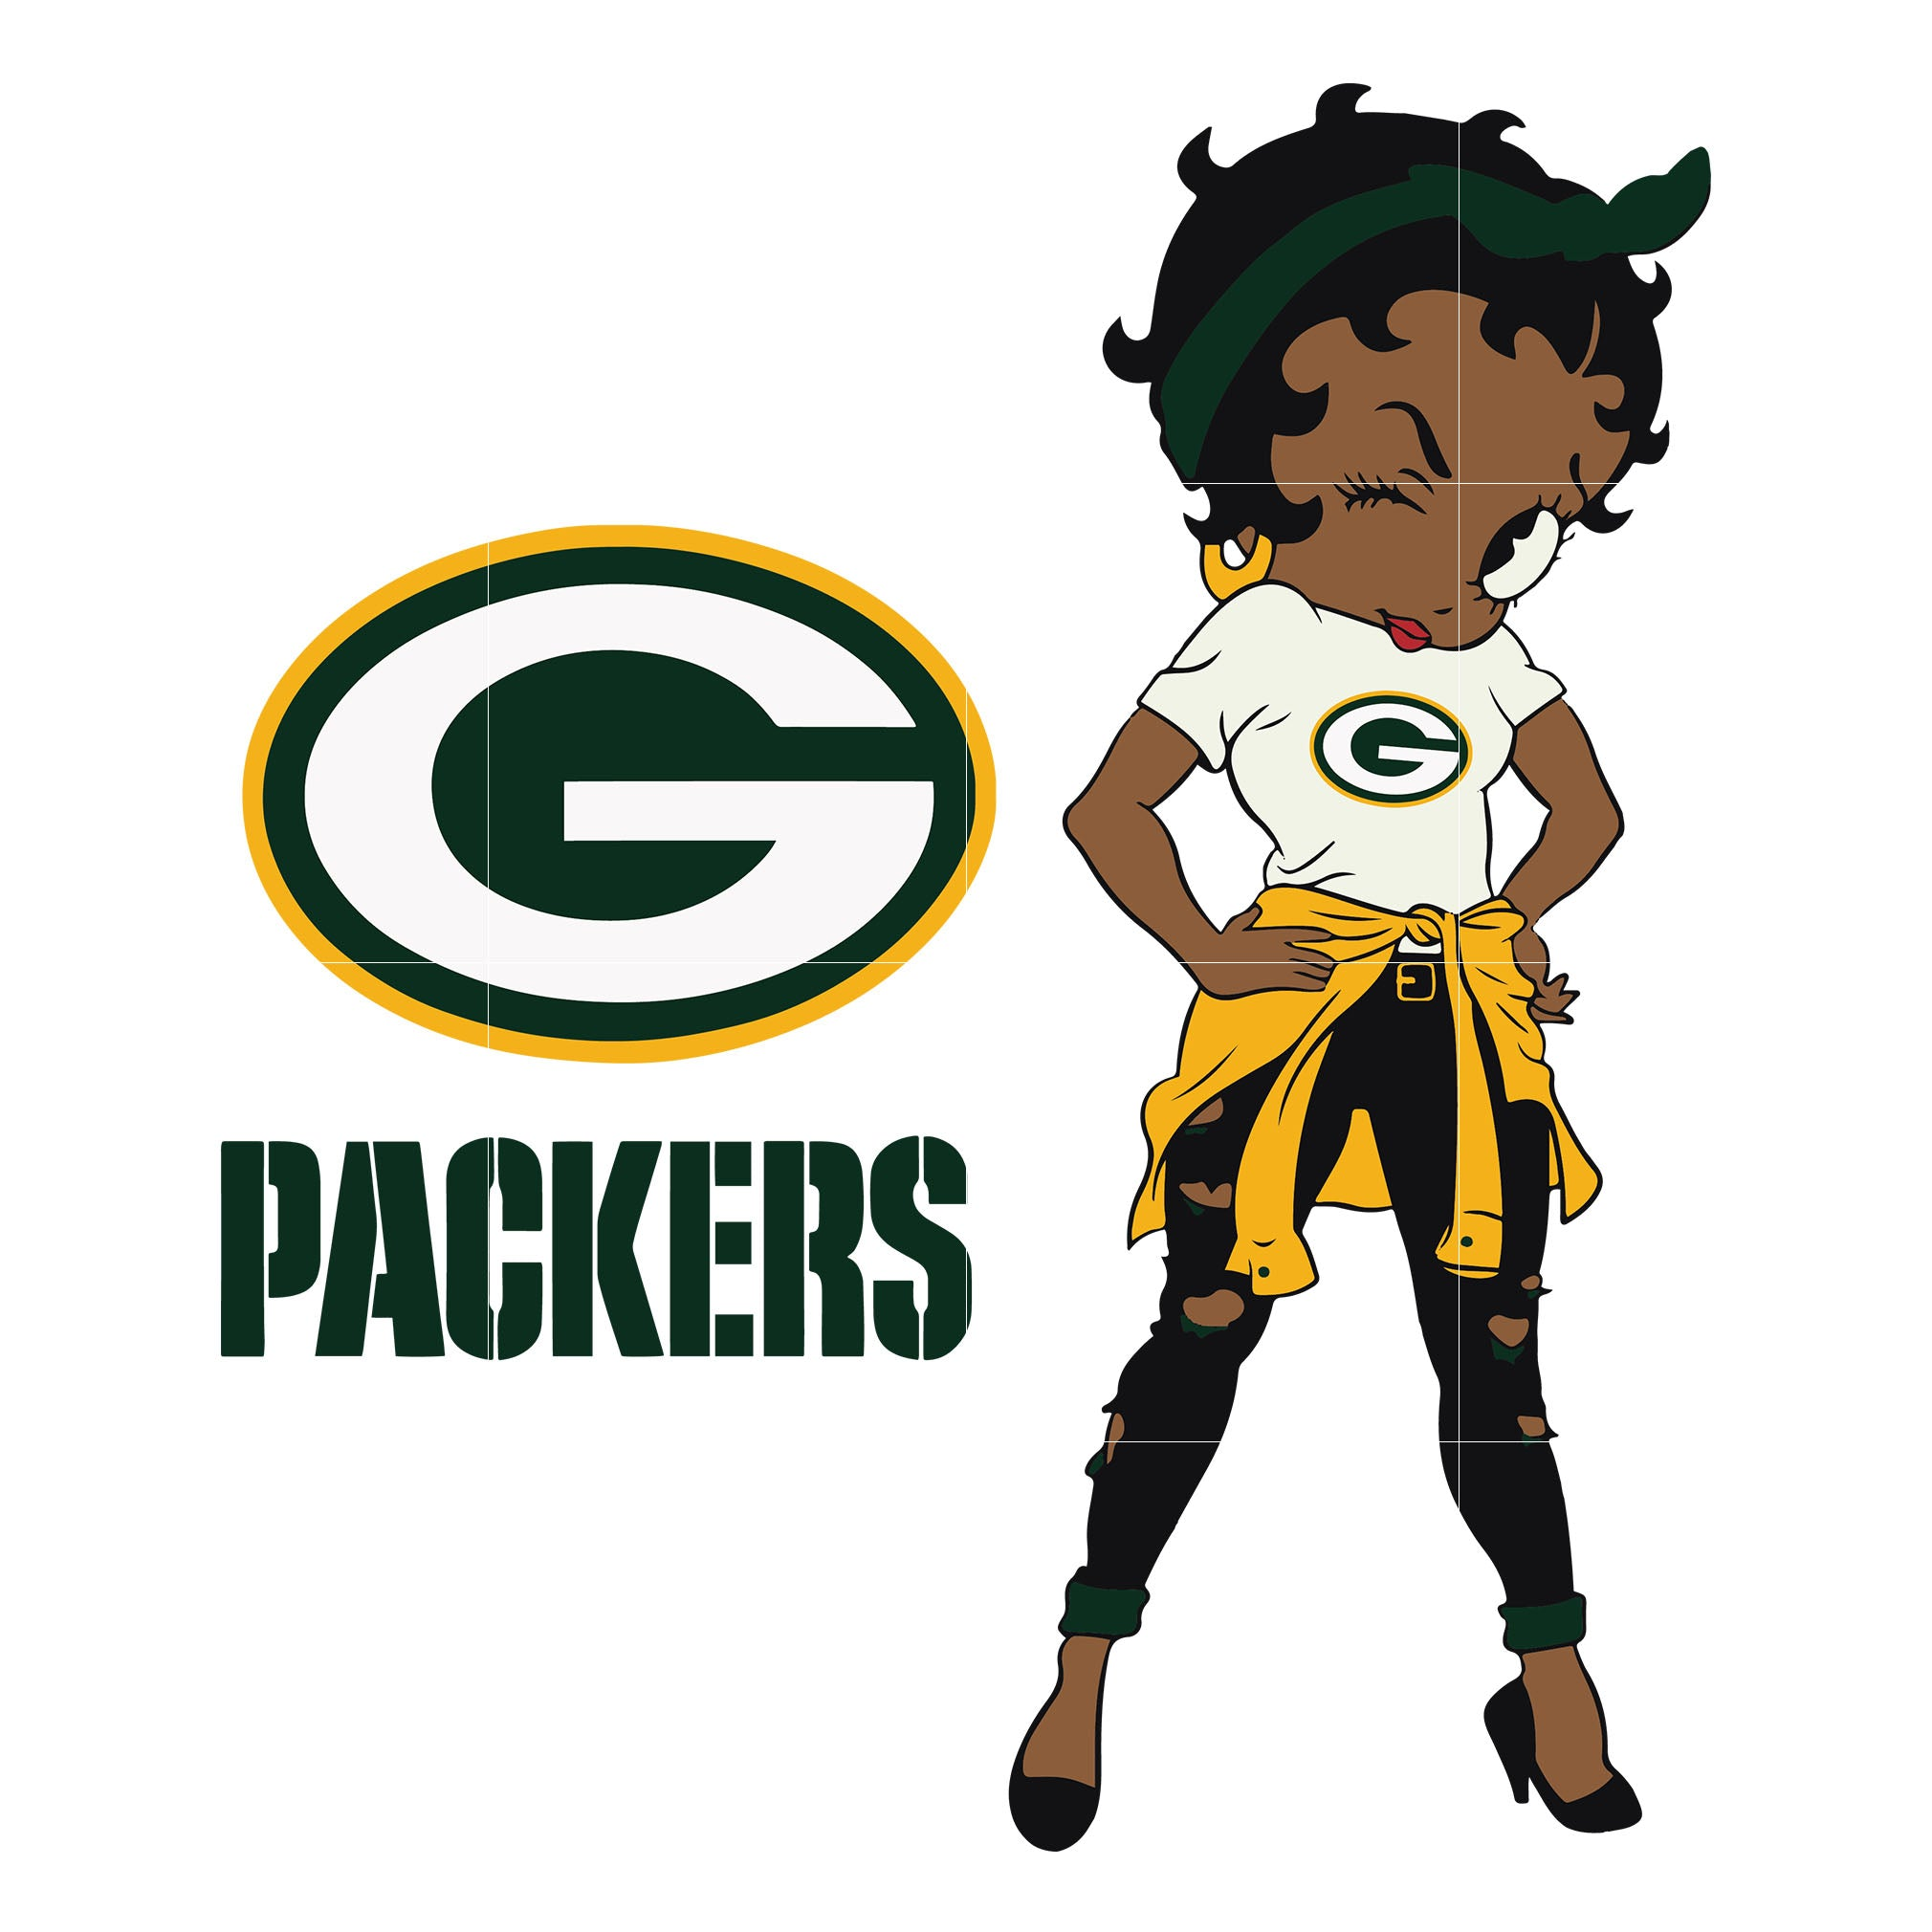 Betty boop Green Bay Packers, Green Bay Packers svg, png, dxf, eps. INSTANT DOWNLOAD